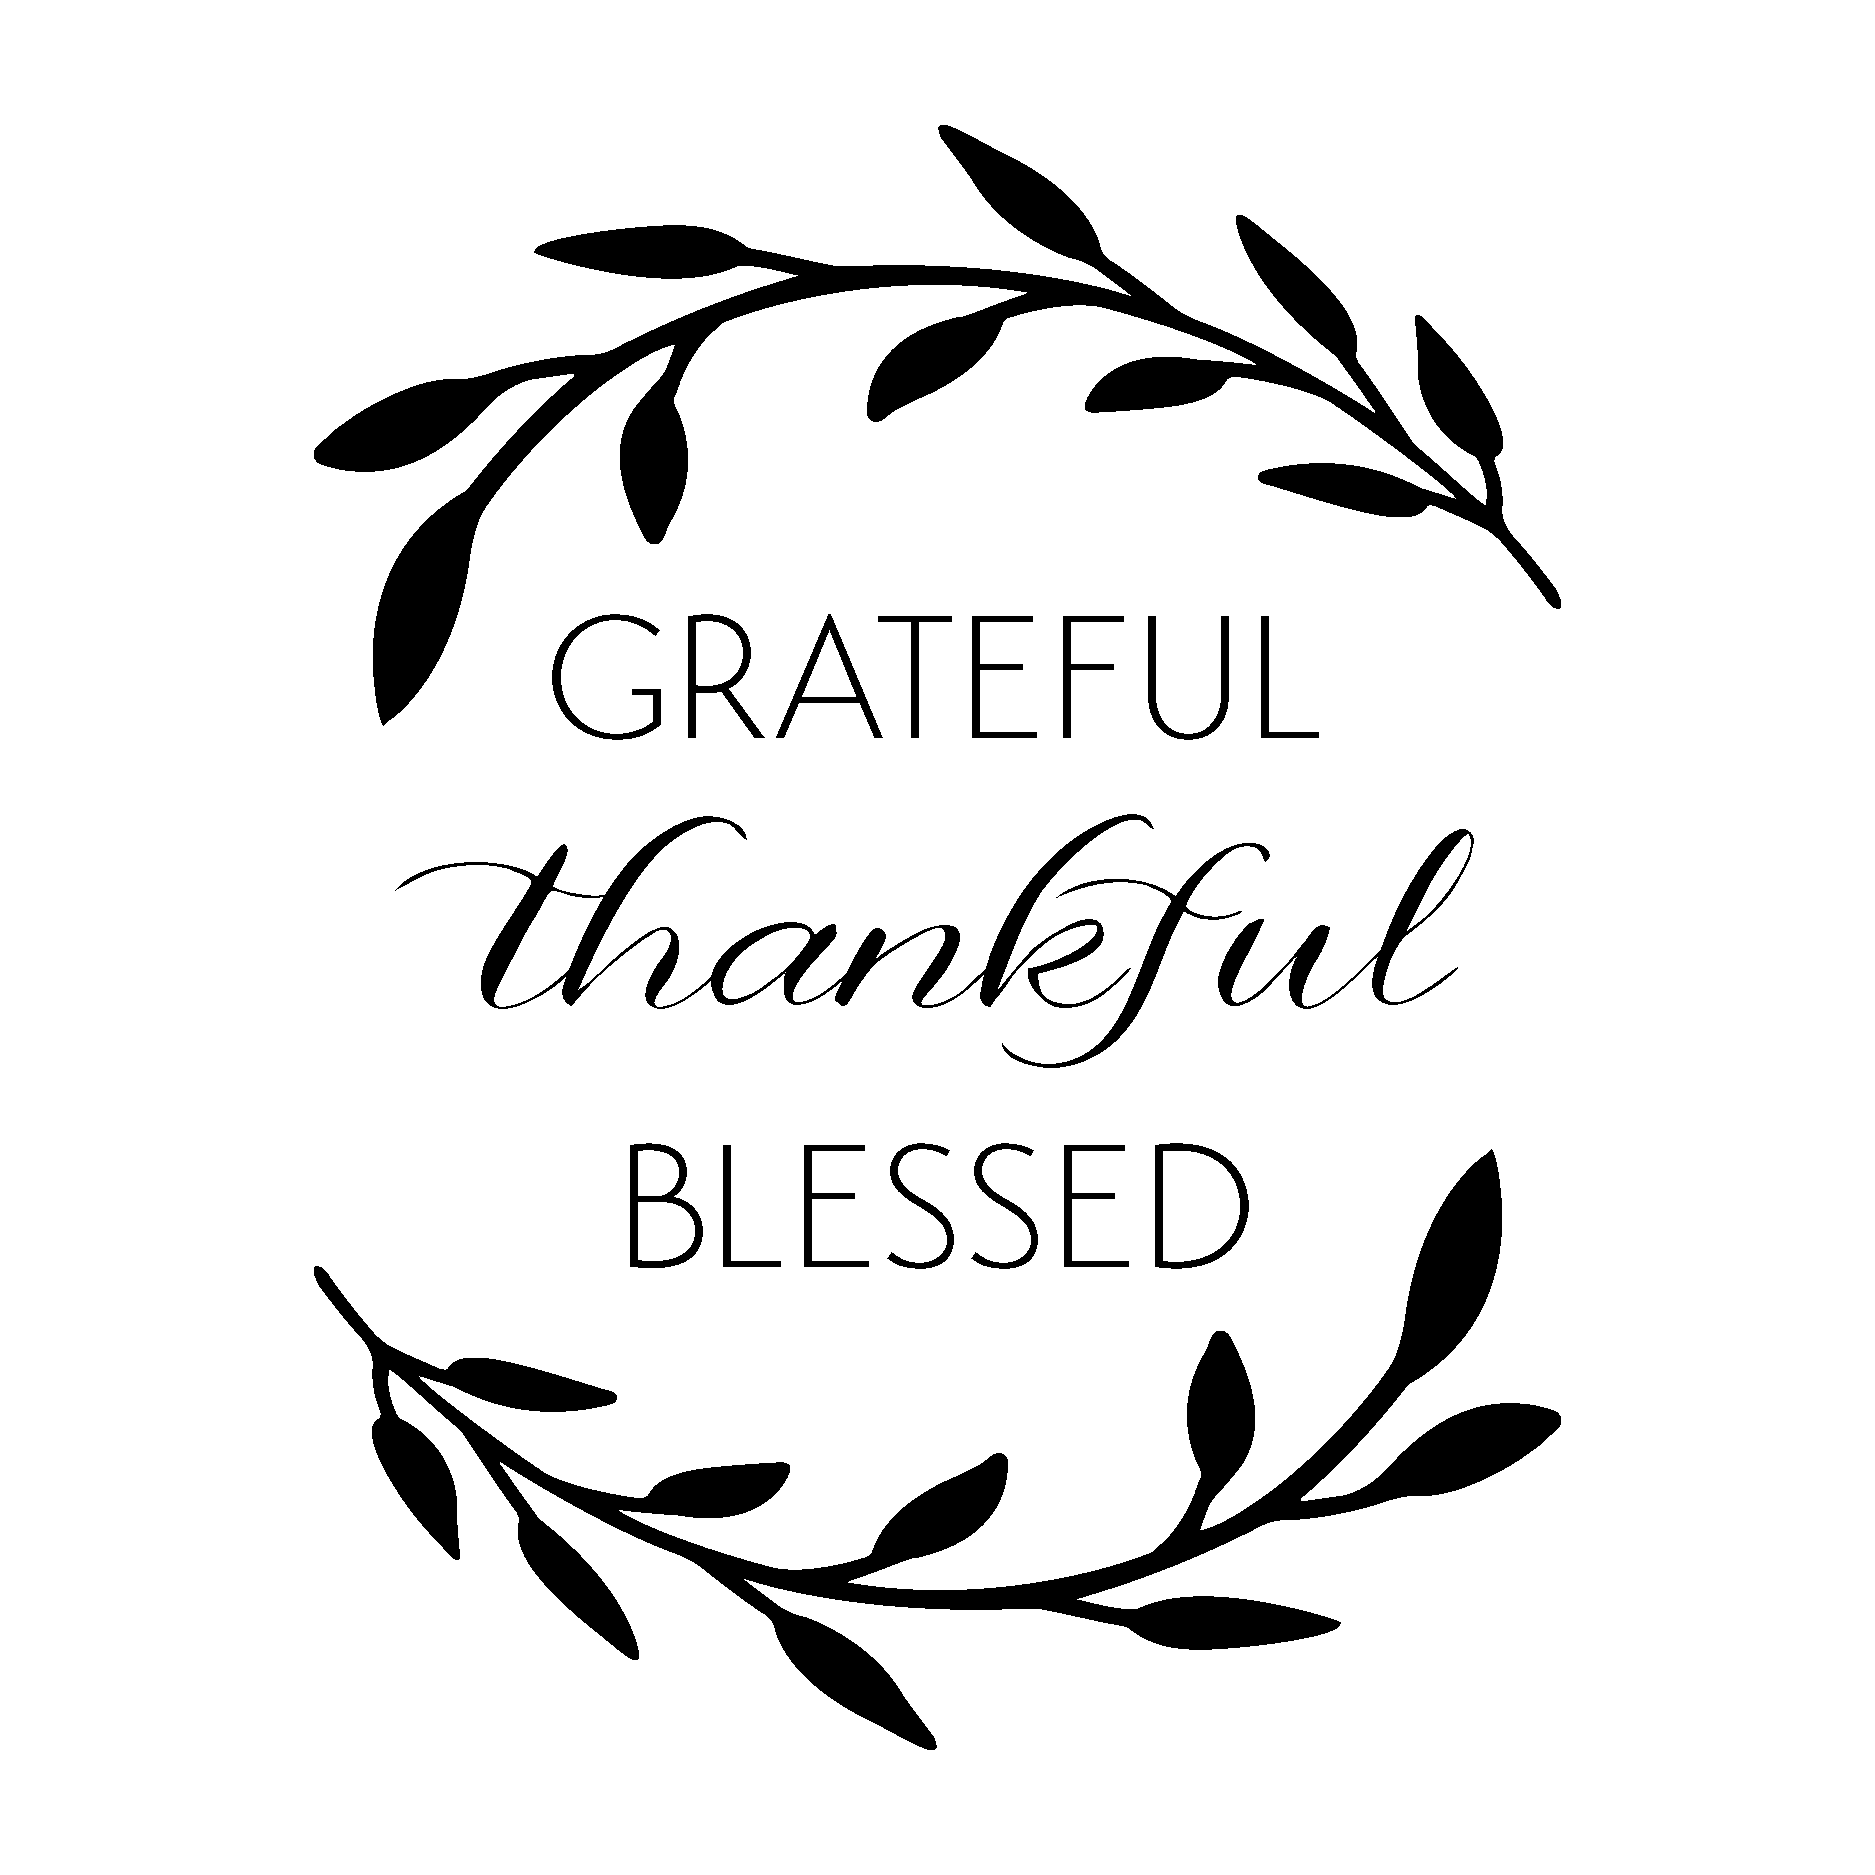 Grateful Thankful Blessed Wall Quotes Decal